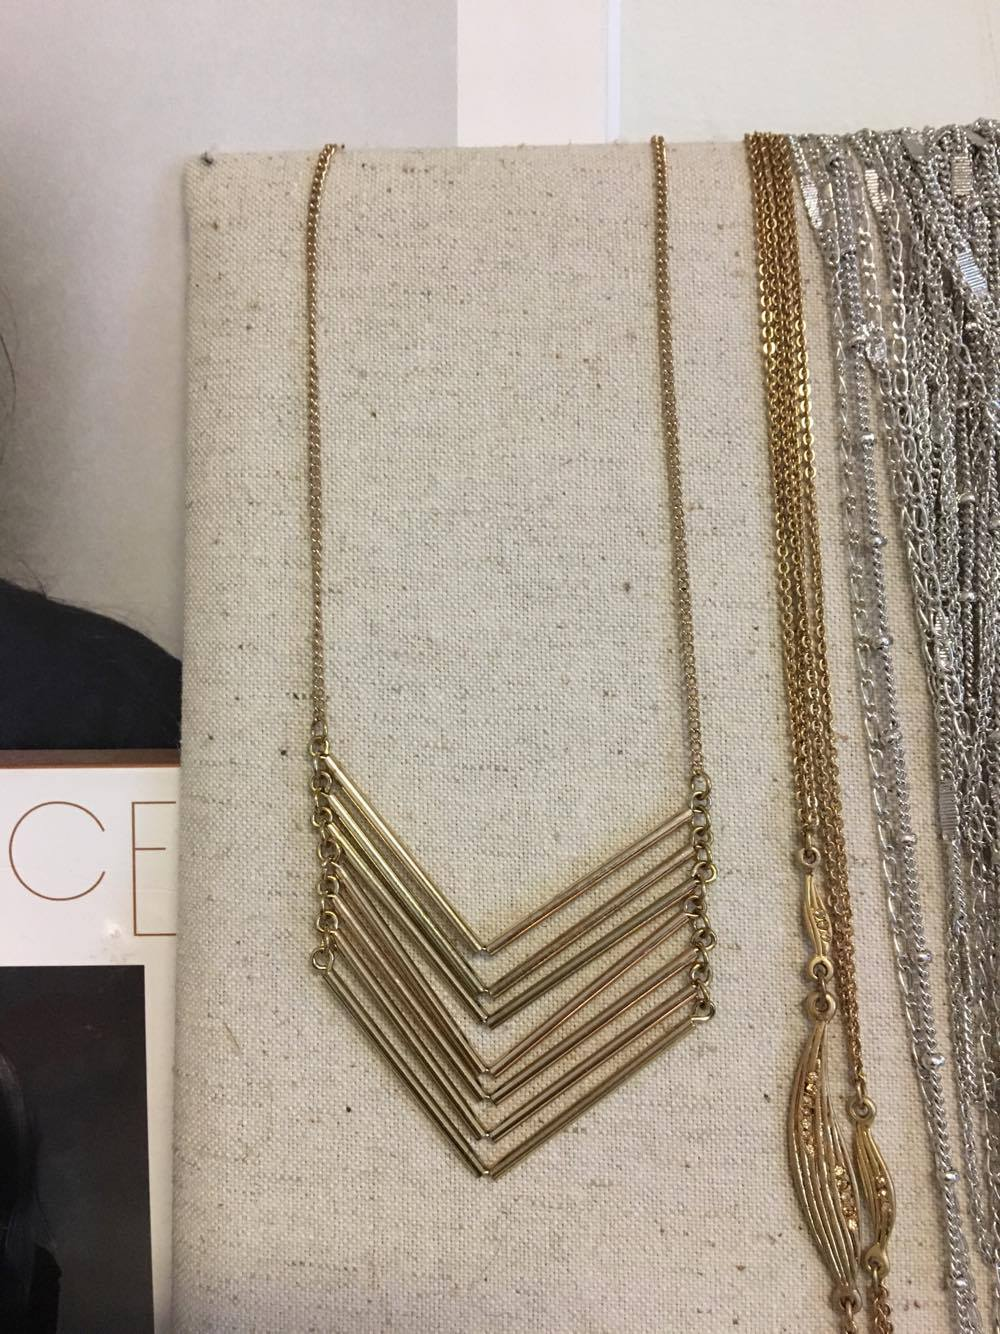 Baublebar Chevron Chain Necklace